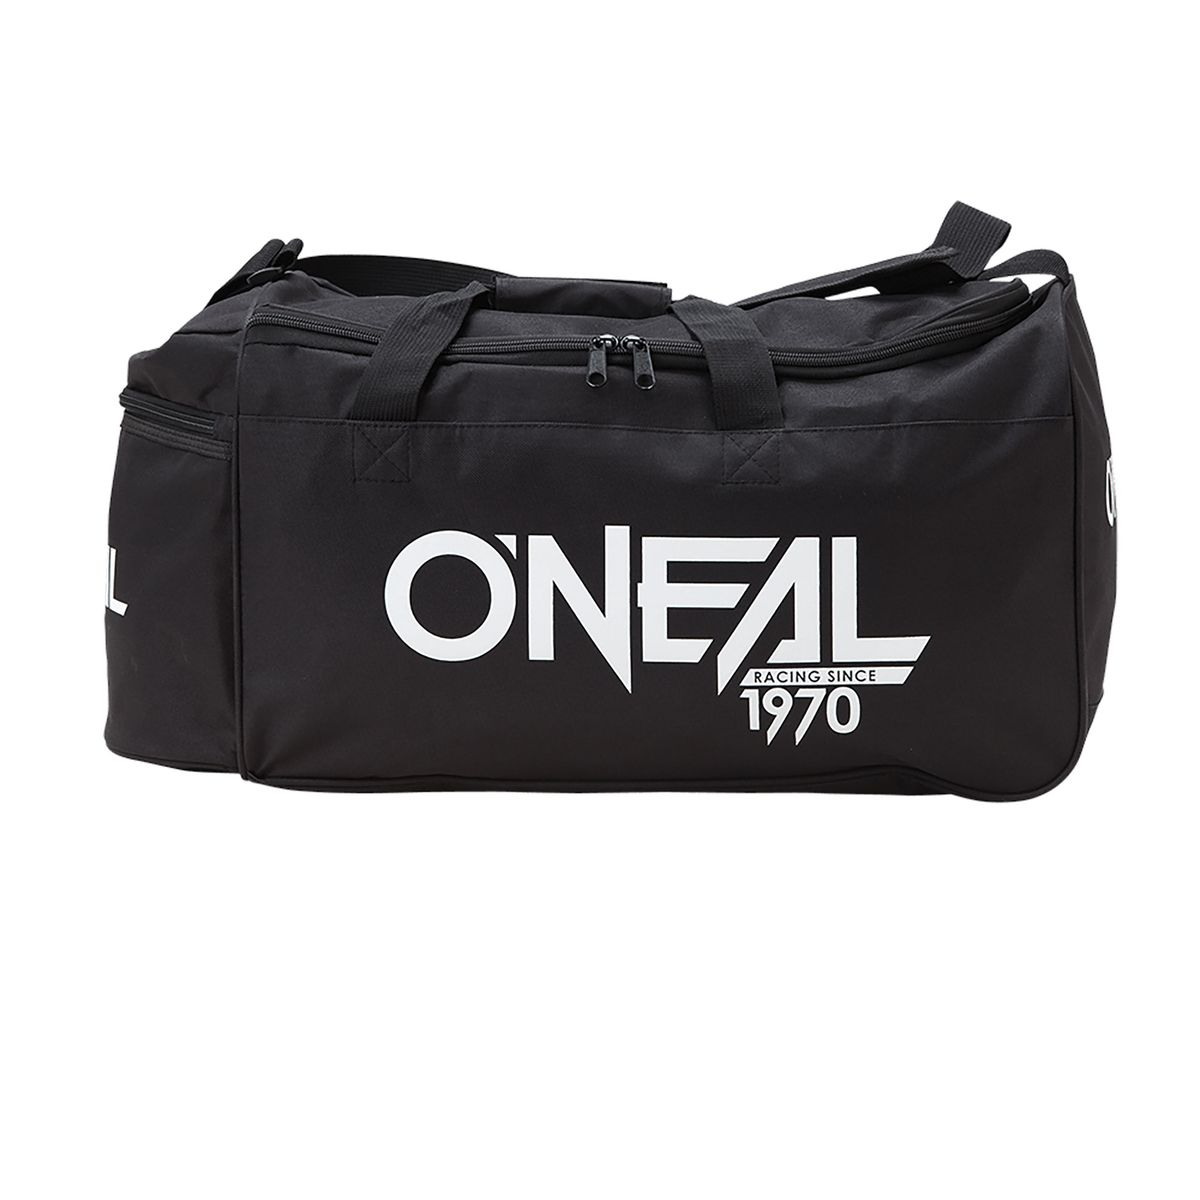 TX2000 GEAR BAG sports bag